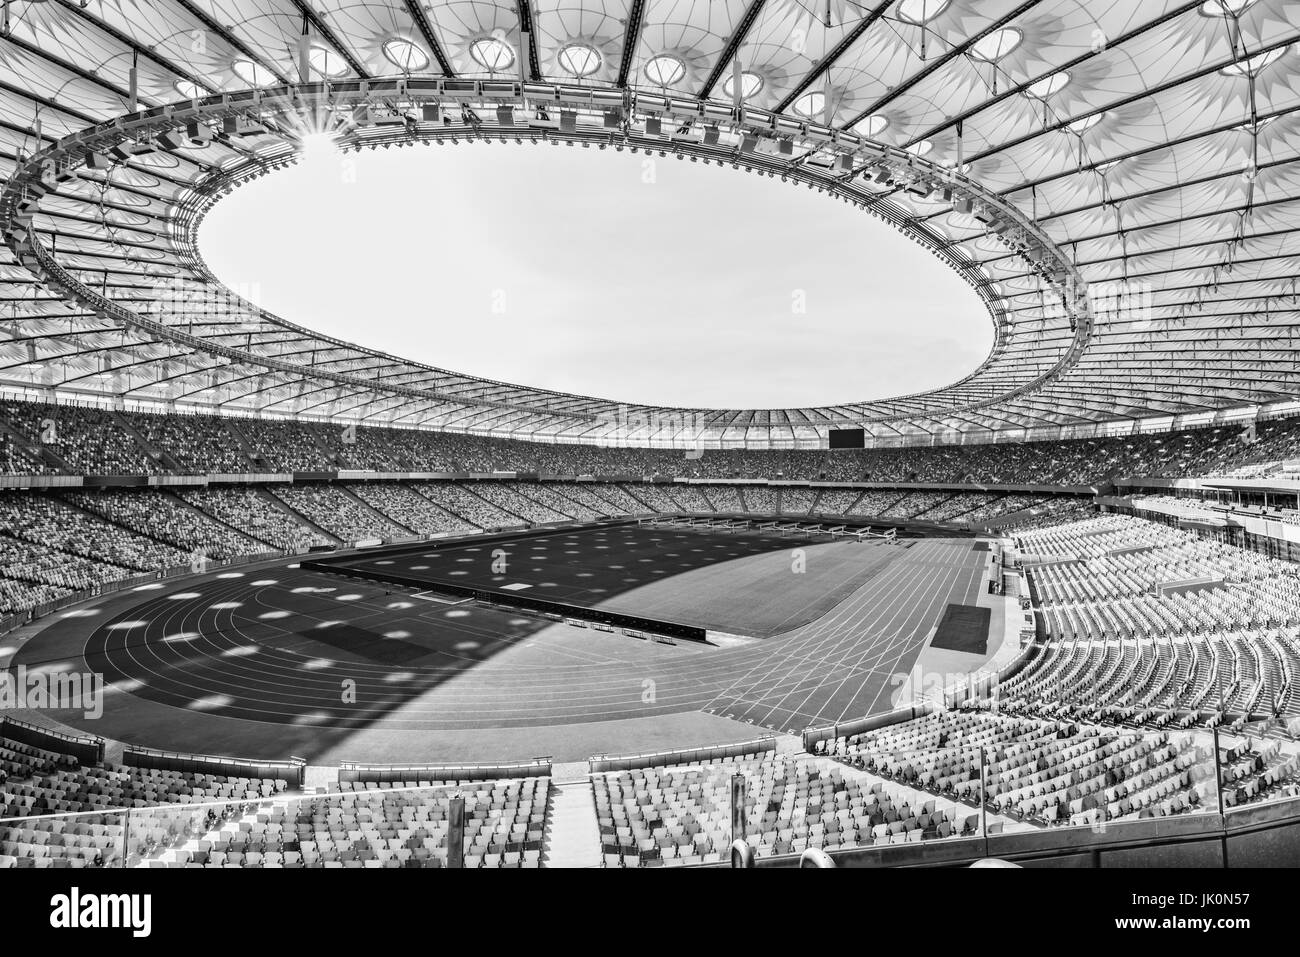 rows of yellow and blue stadium seats on soccer field stadium, black and white - Stock Image